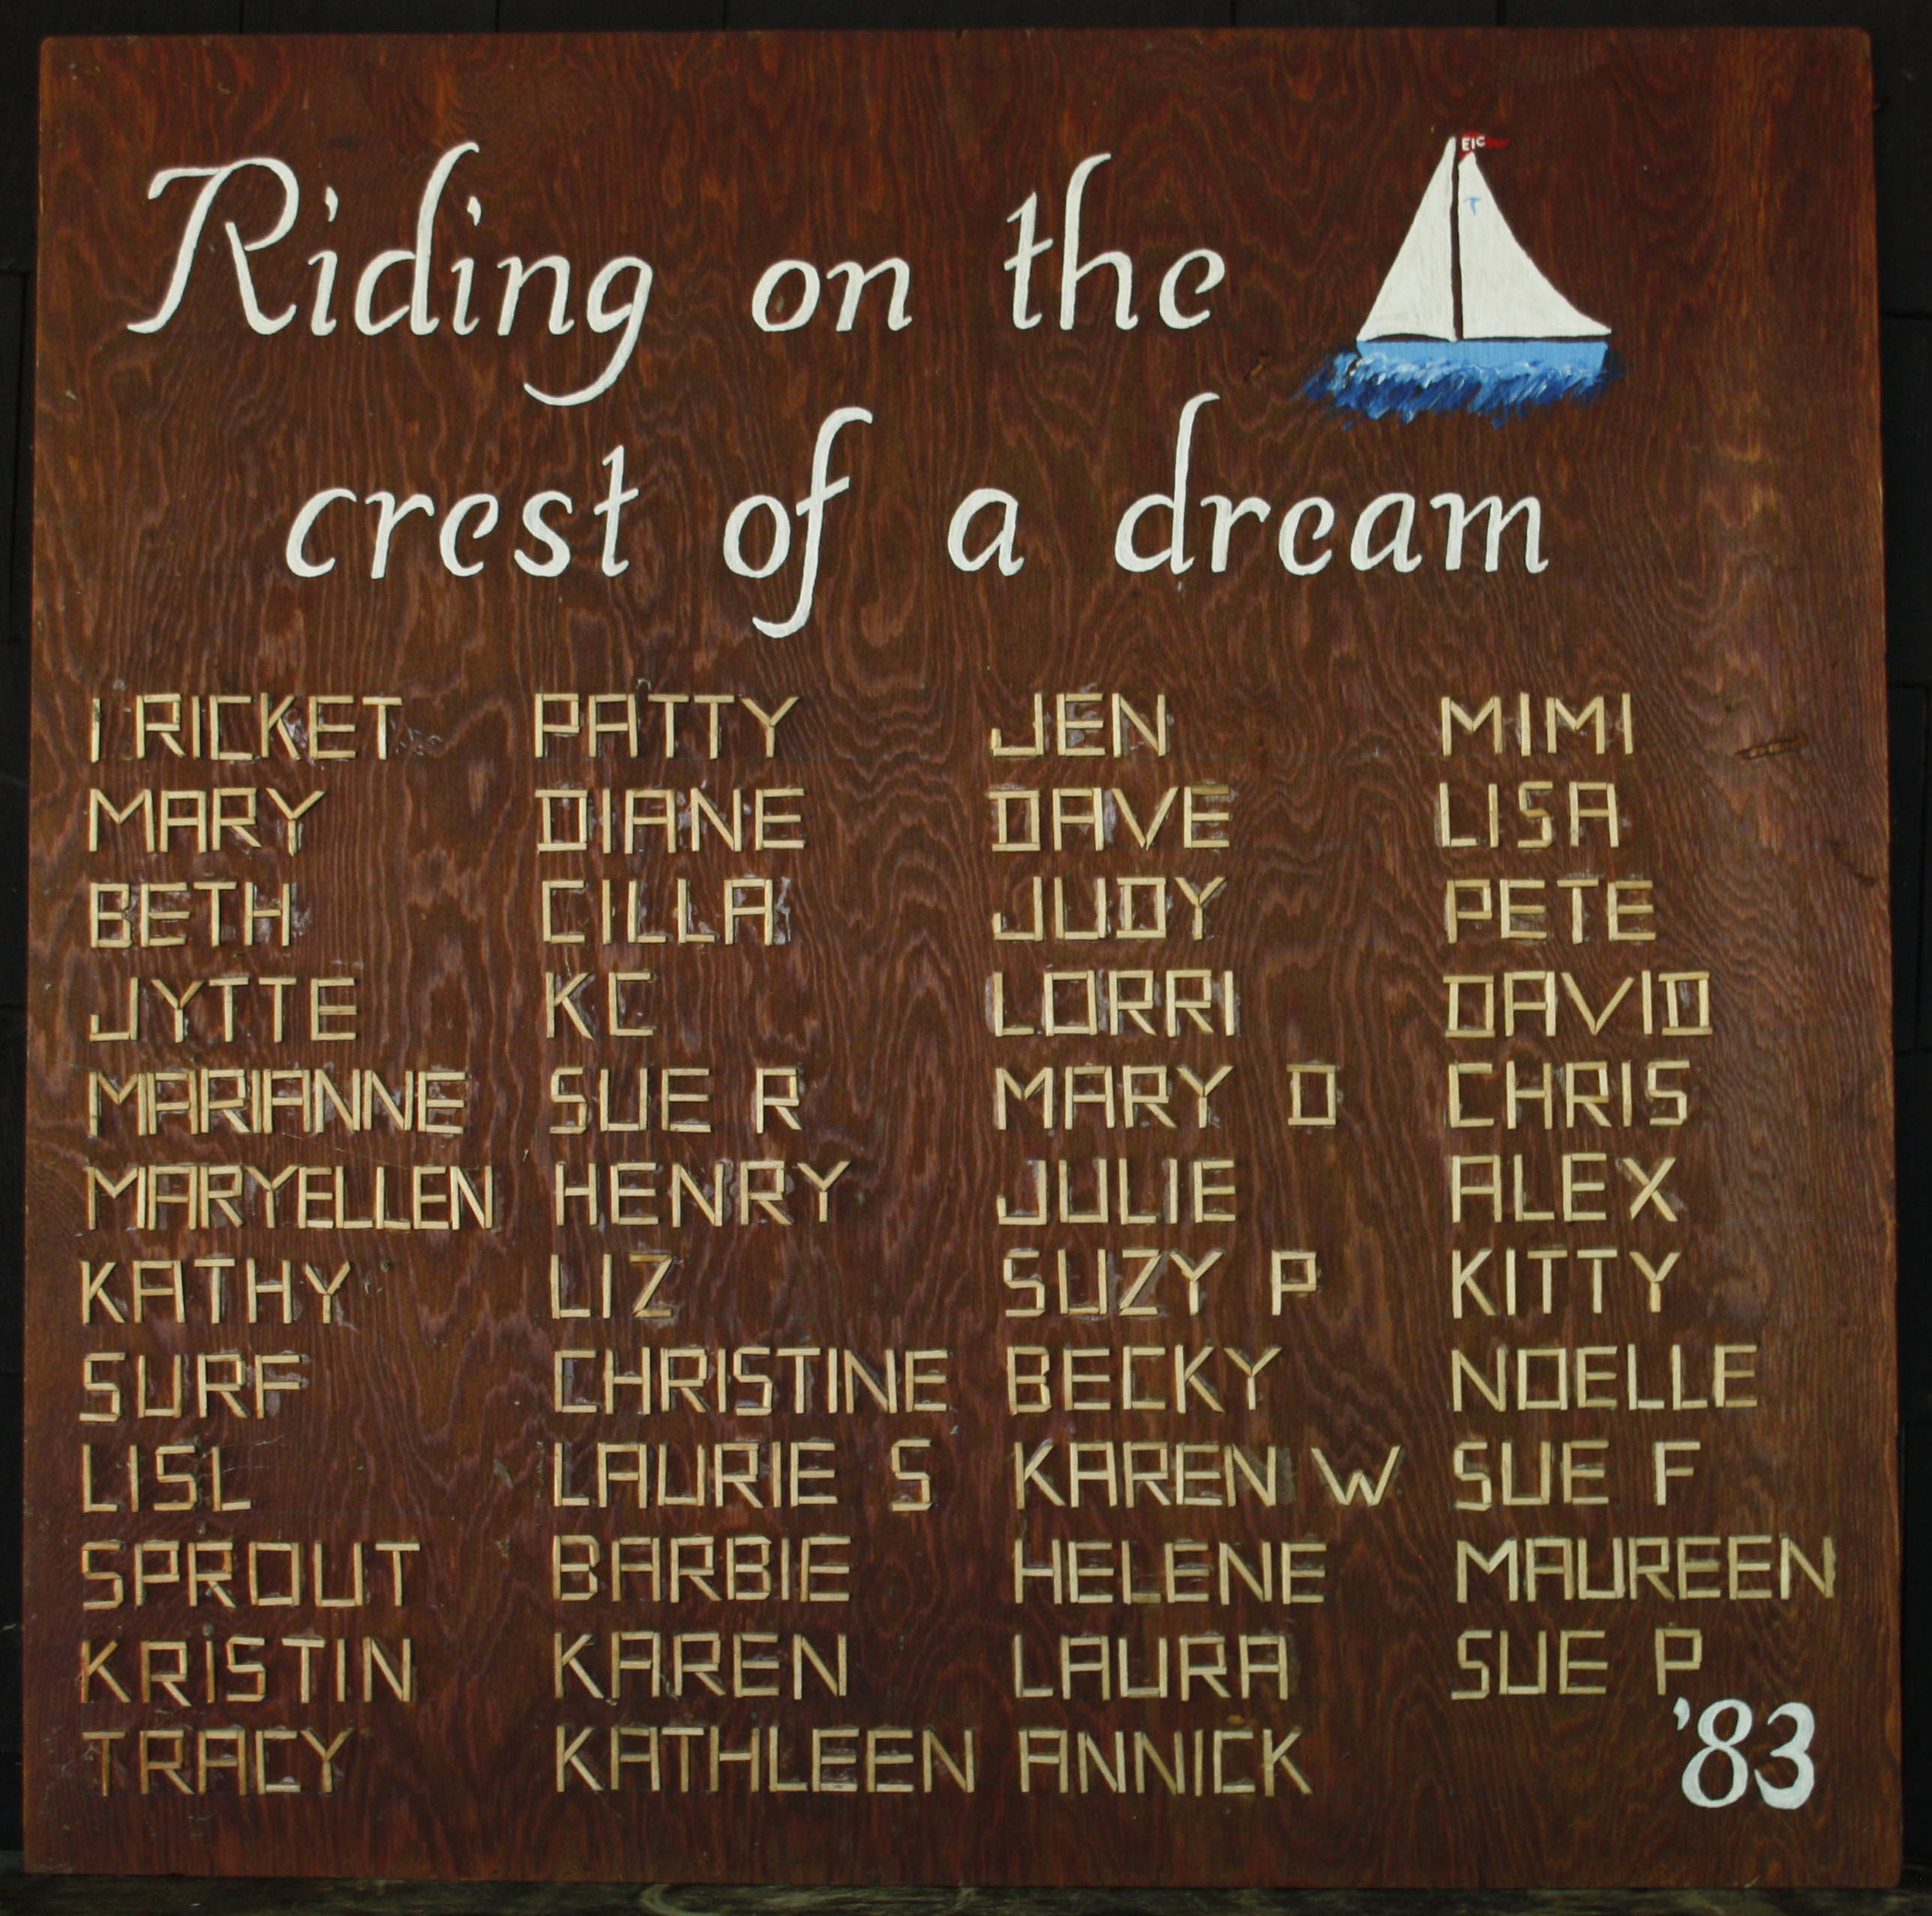 1983-riding-on-the-crest-of-a-dream_42597323180_o.jpg